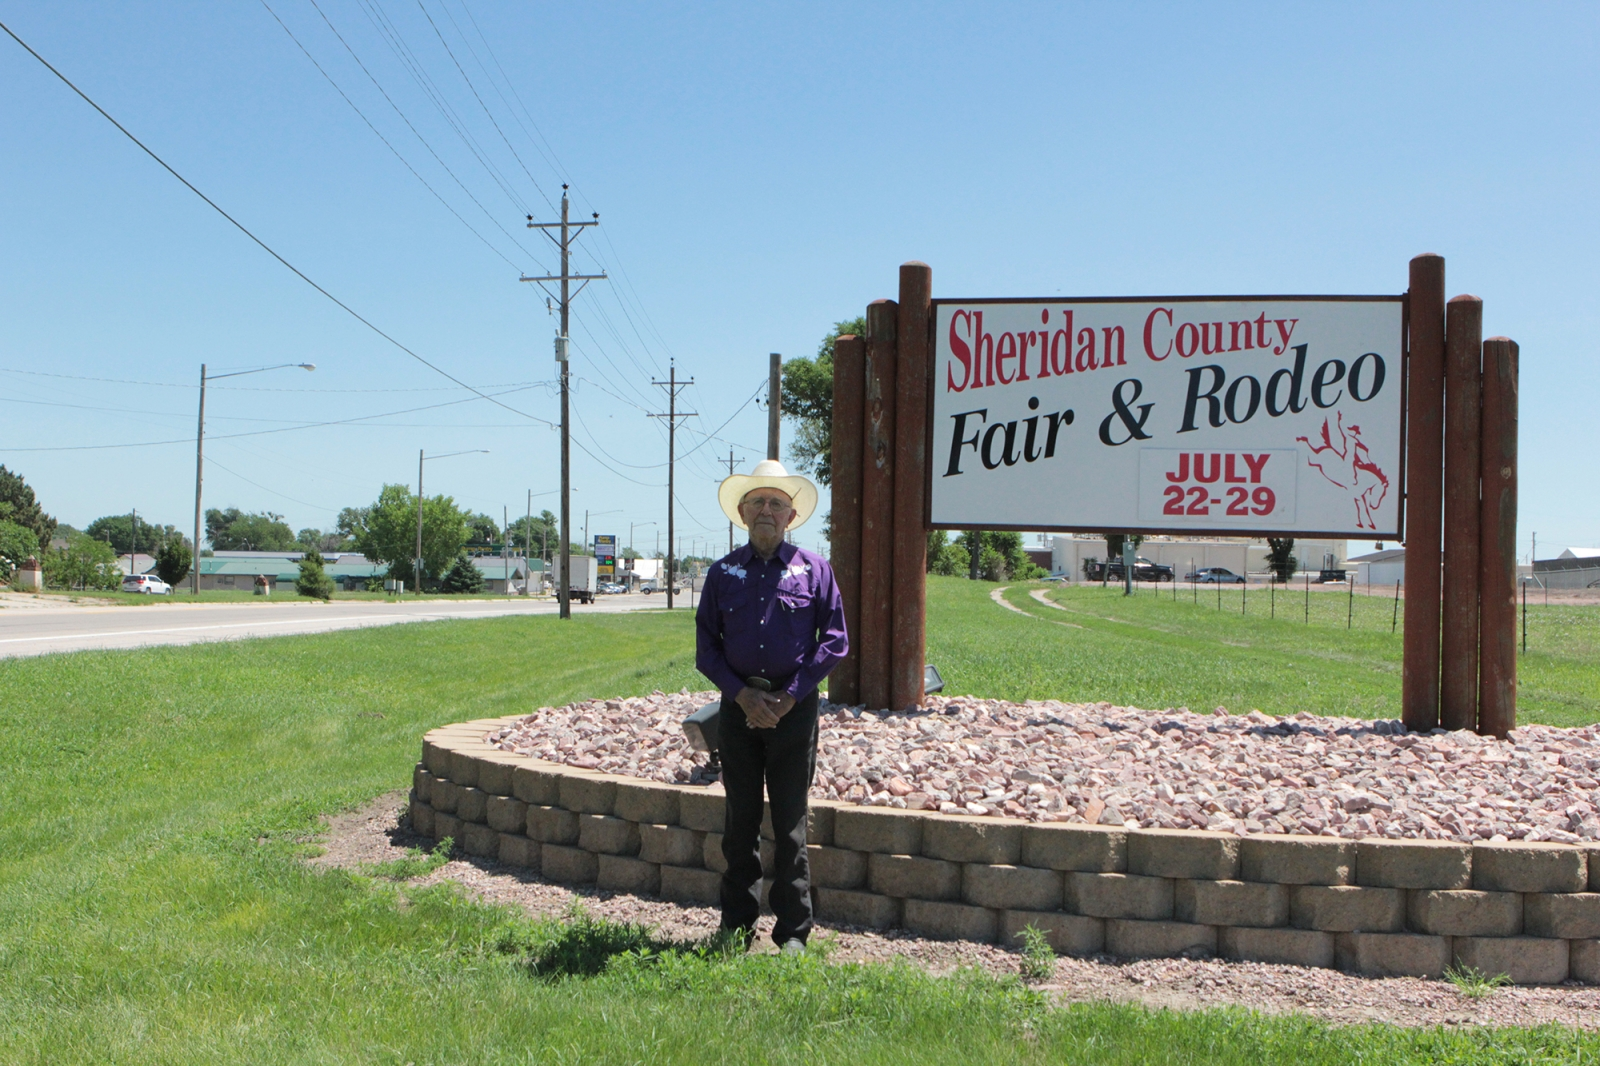 Willis Gran, the 2019 SCF&R Parade Grand Marshal, stands by a sign welcoming people to Gordon for the Fair and Rodeo events.